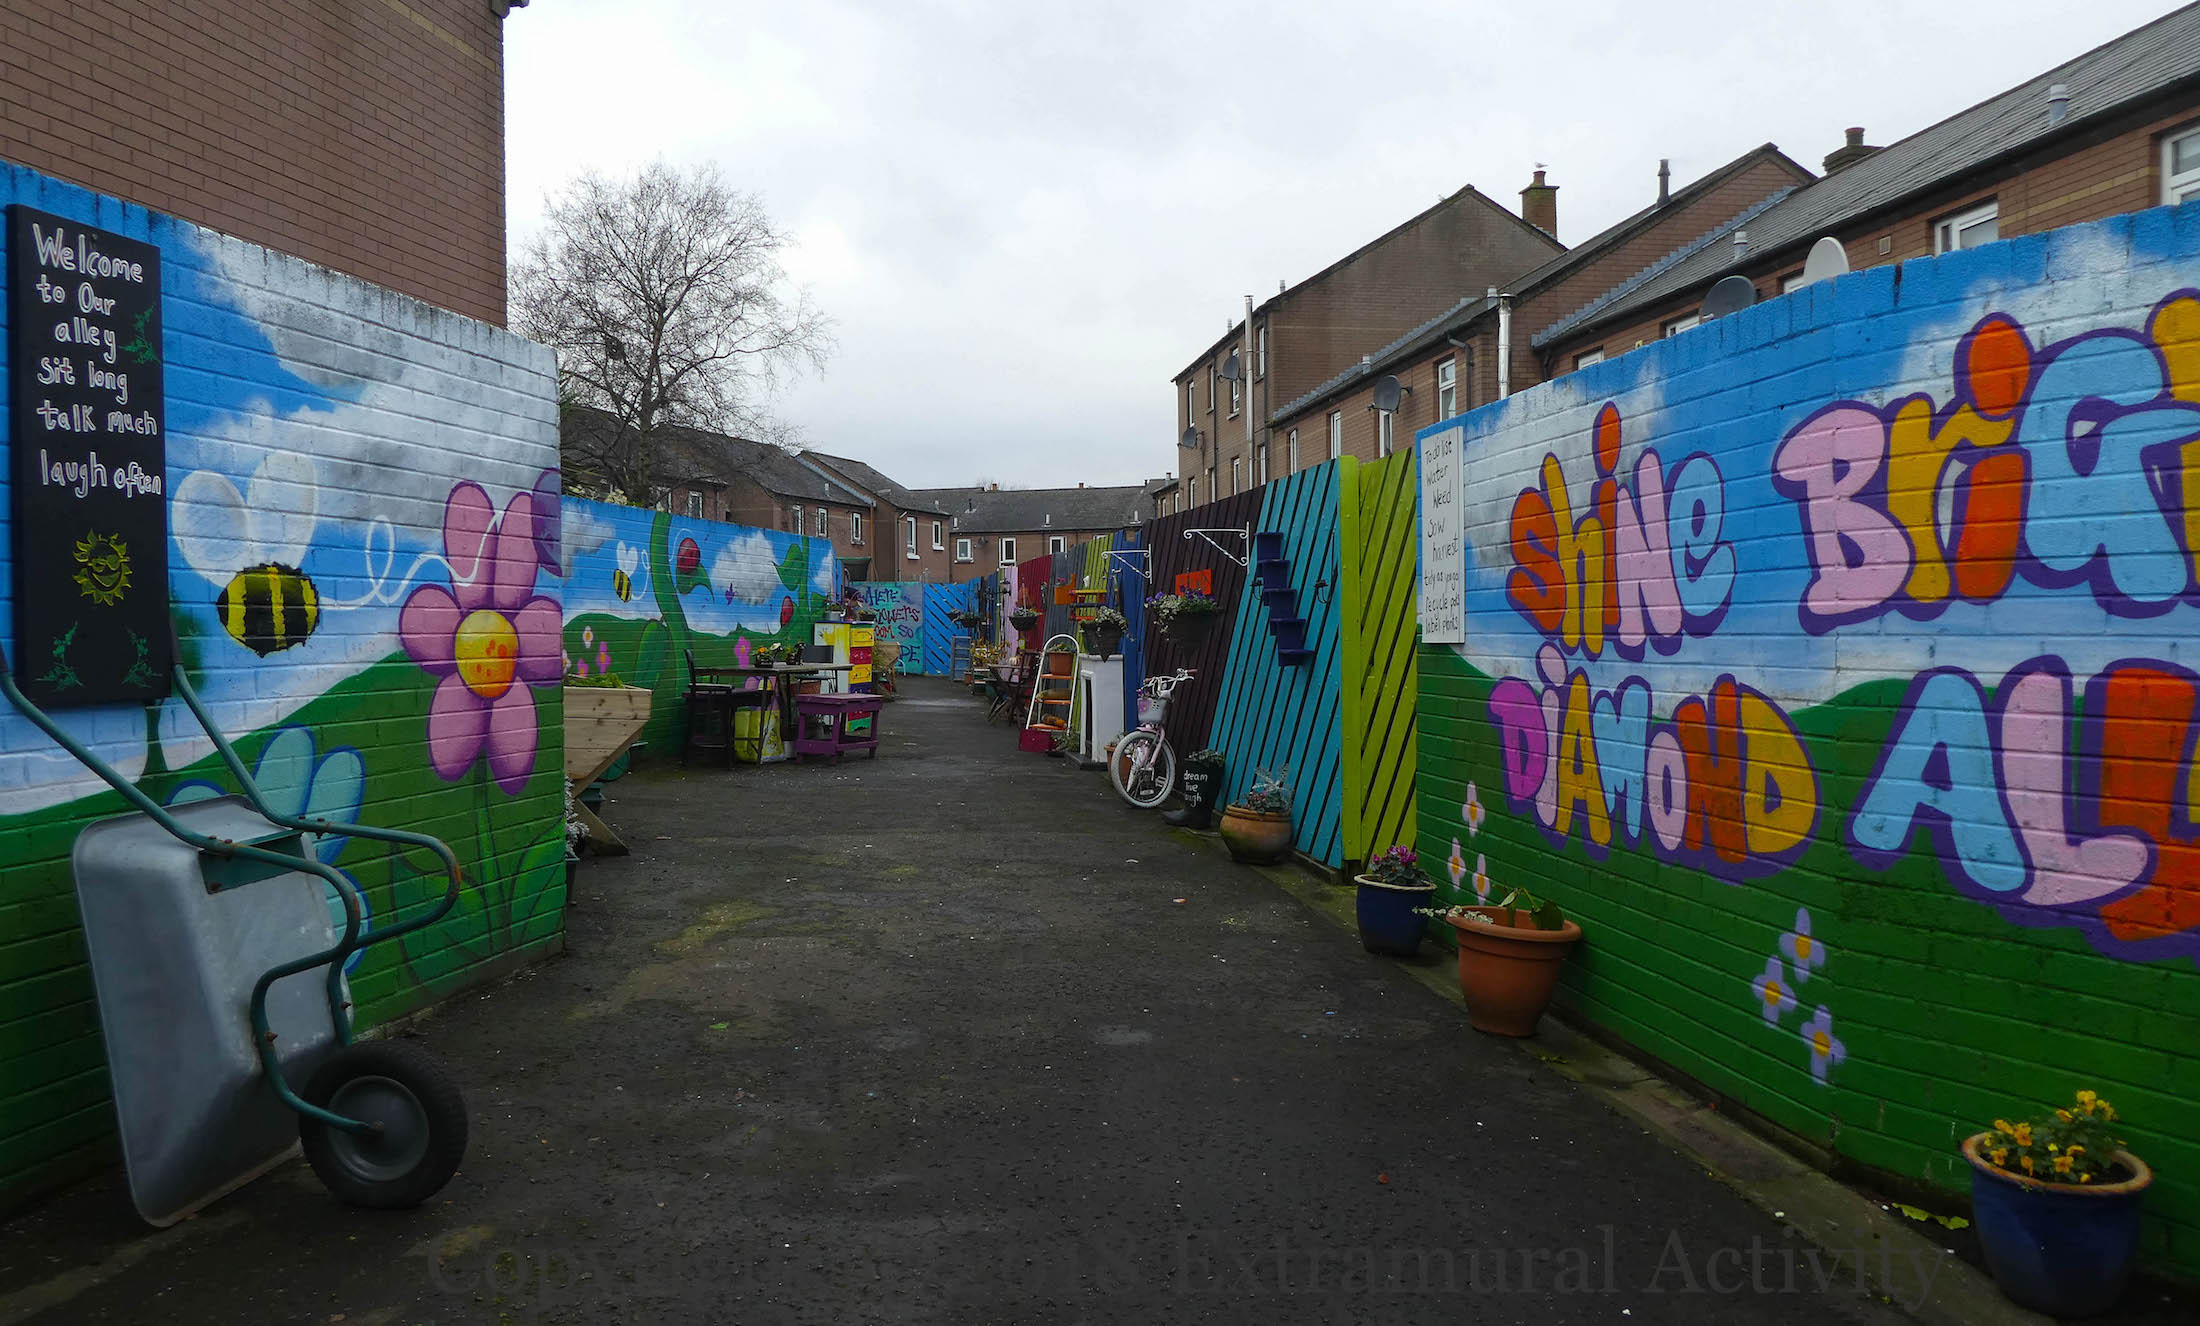 Shine bright diamond alley extramural activity for Extra mural activity